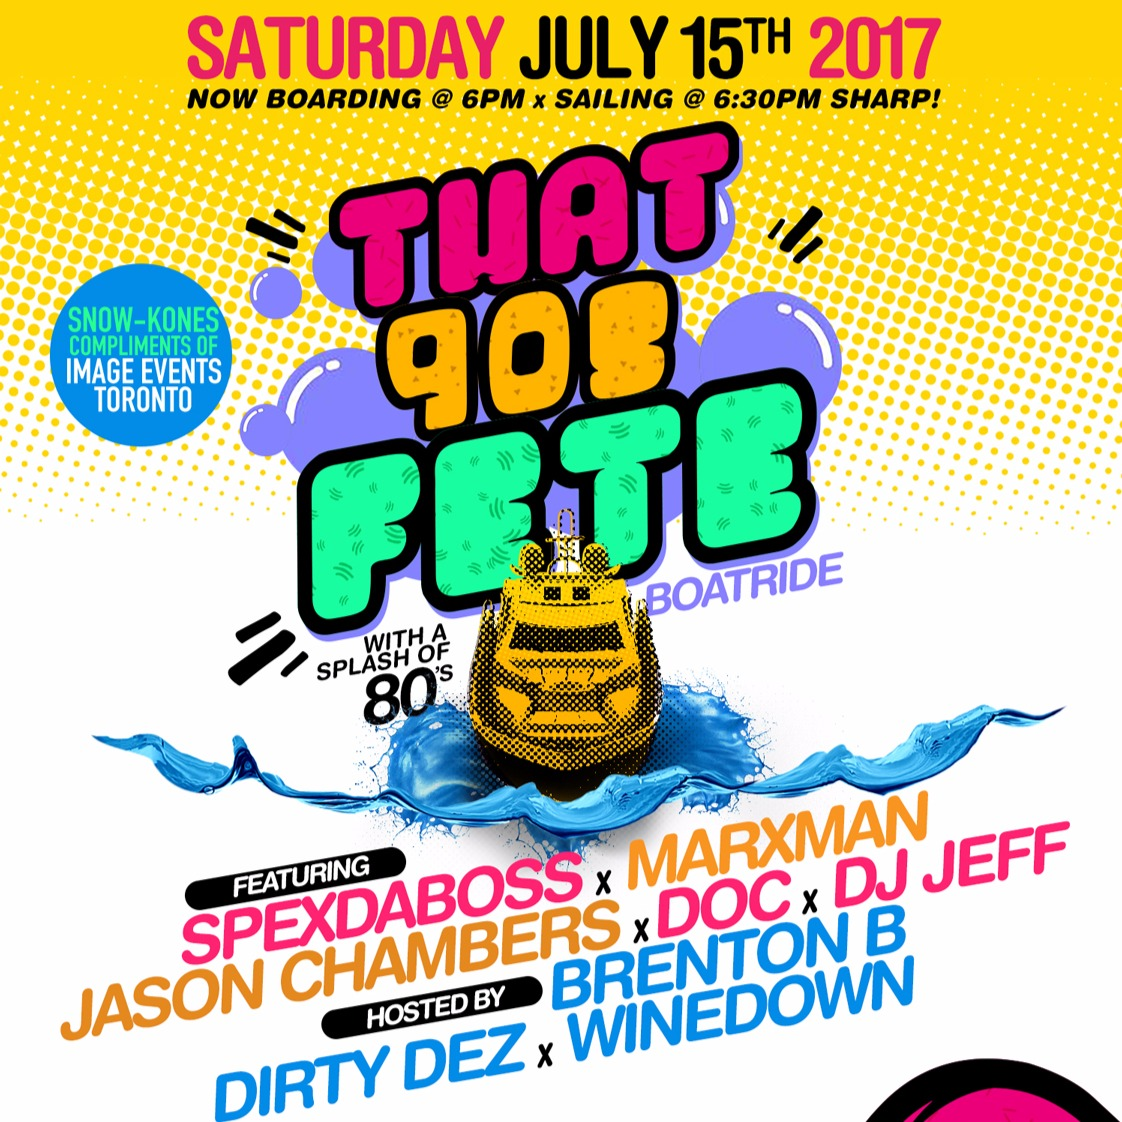 THAT 90s FETE BOAT RIDE 2017